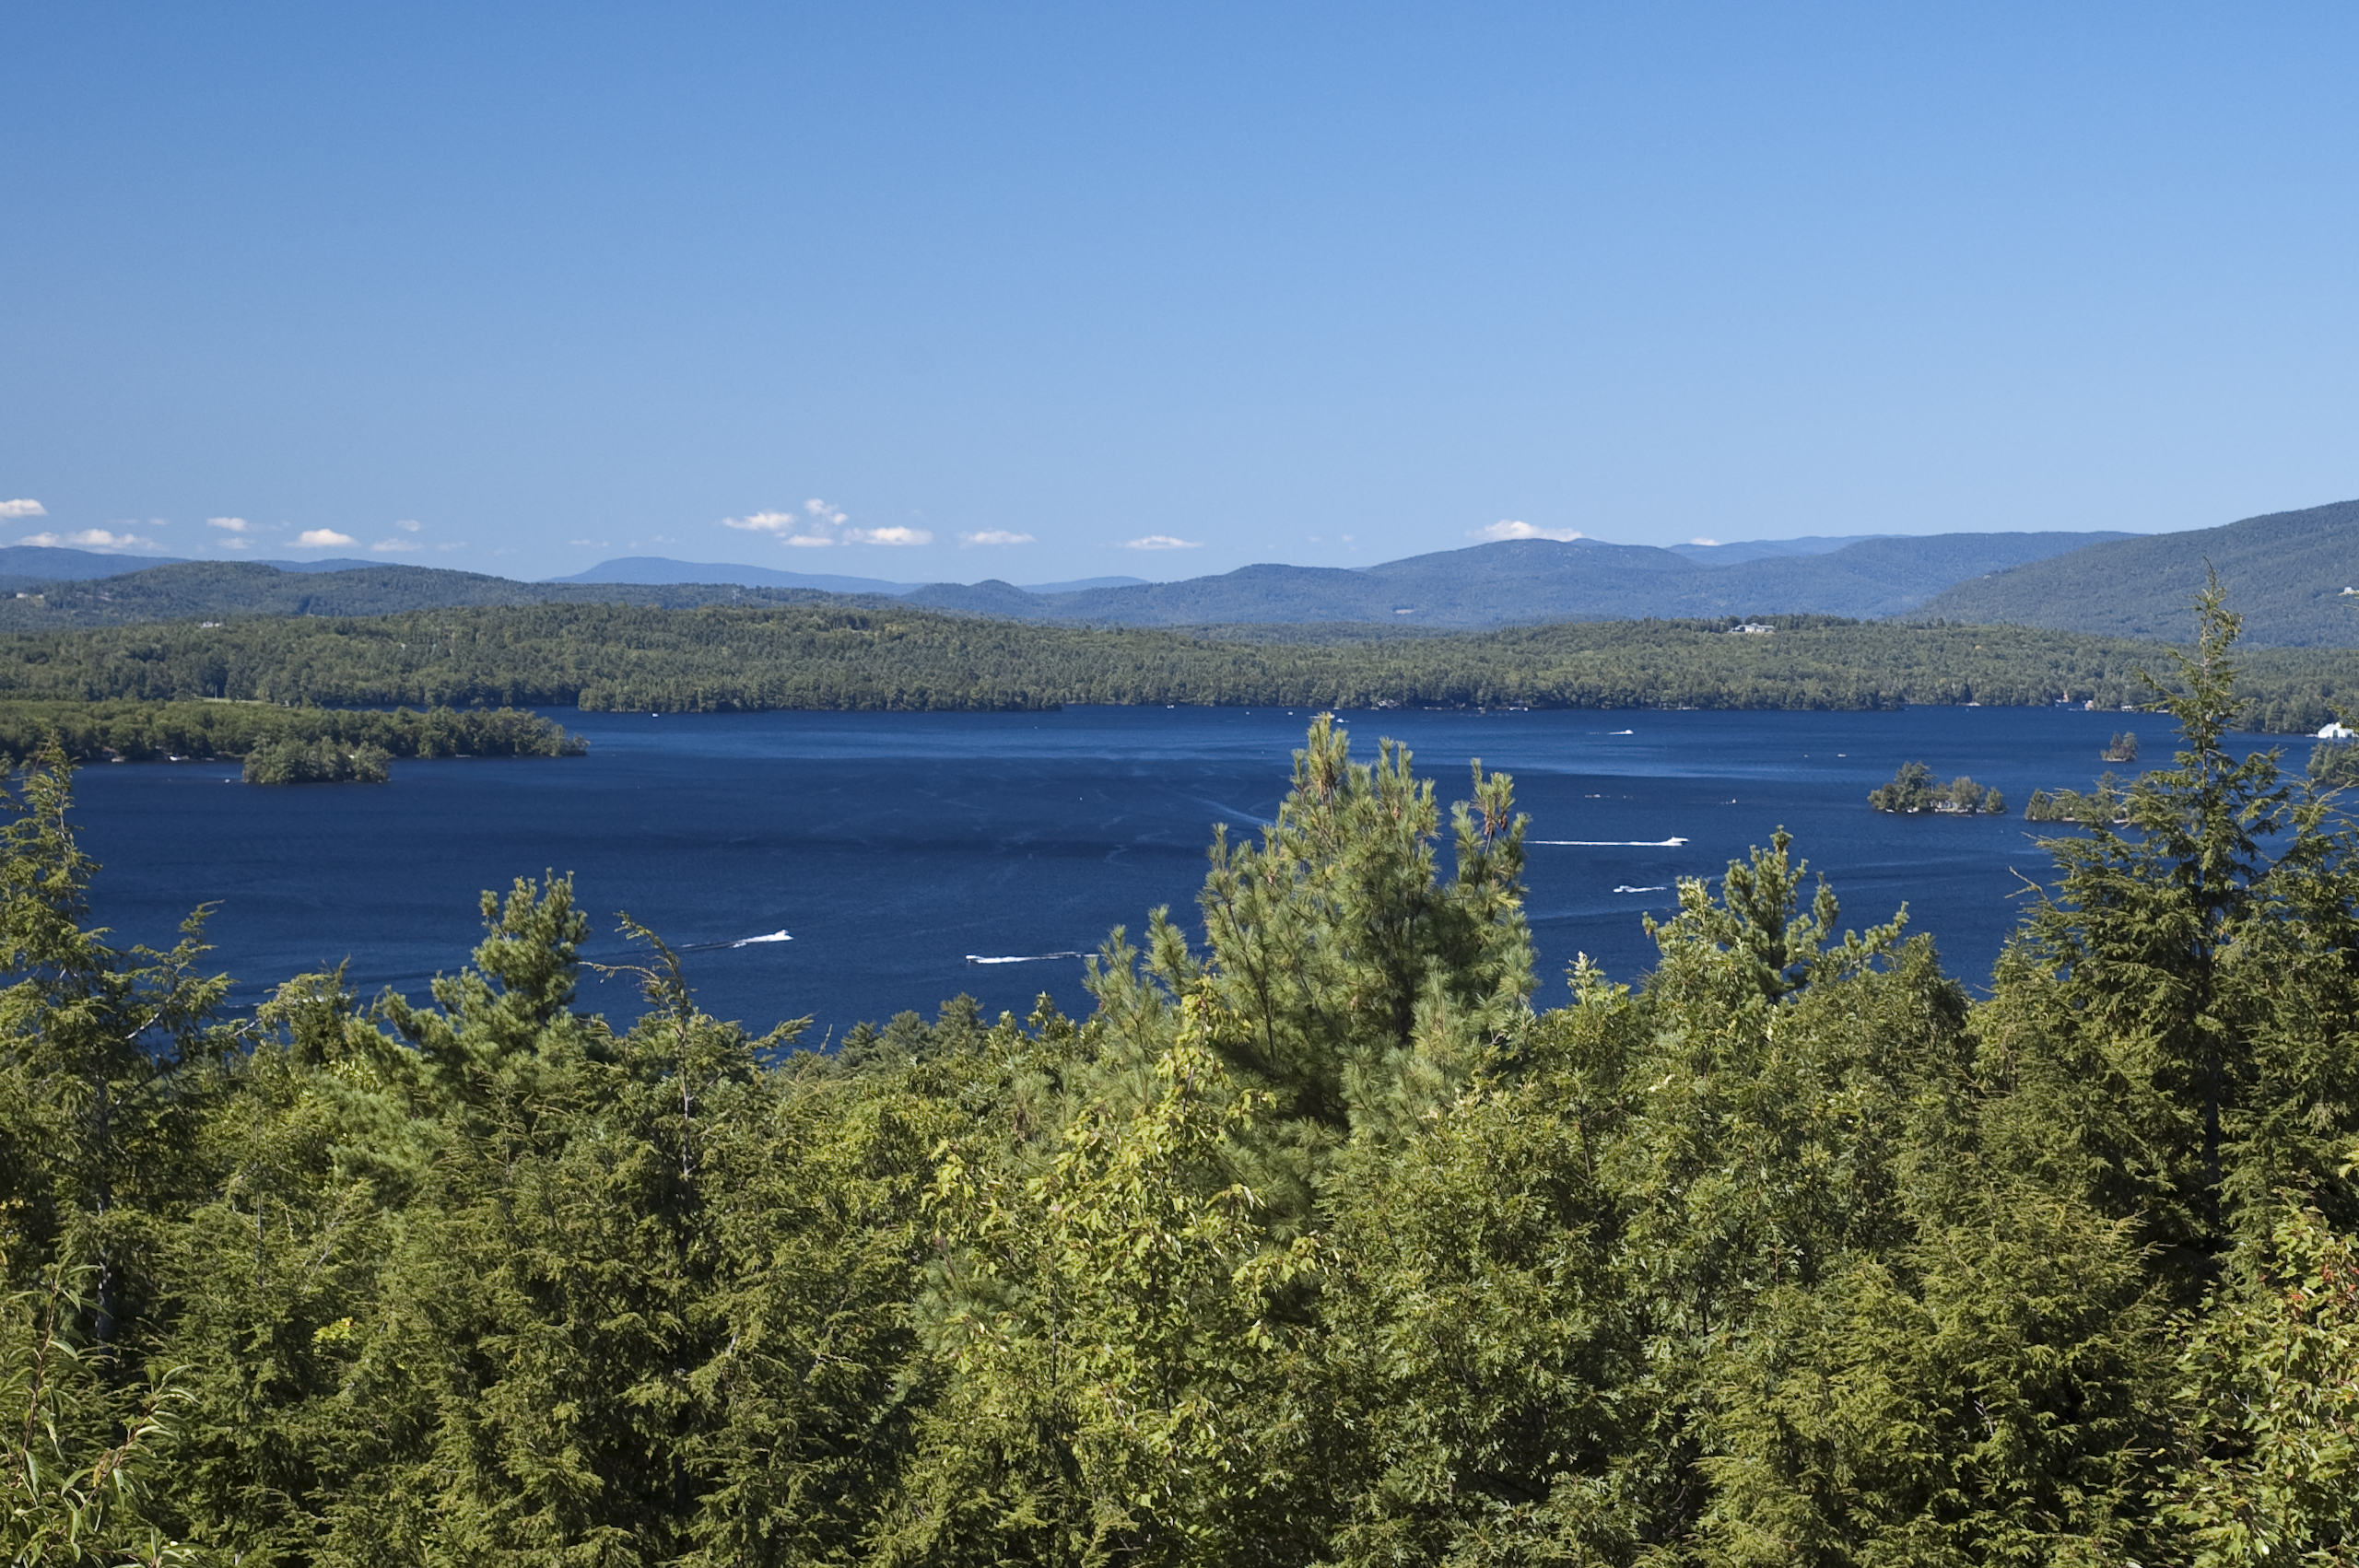 Lake Winnipesaukee and the Ossipee Mountains. Photo taken on September 6, 2009.